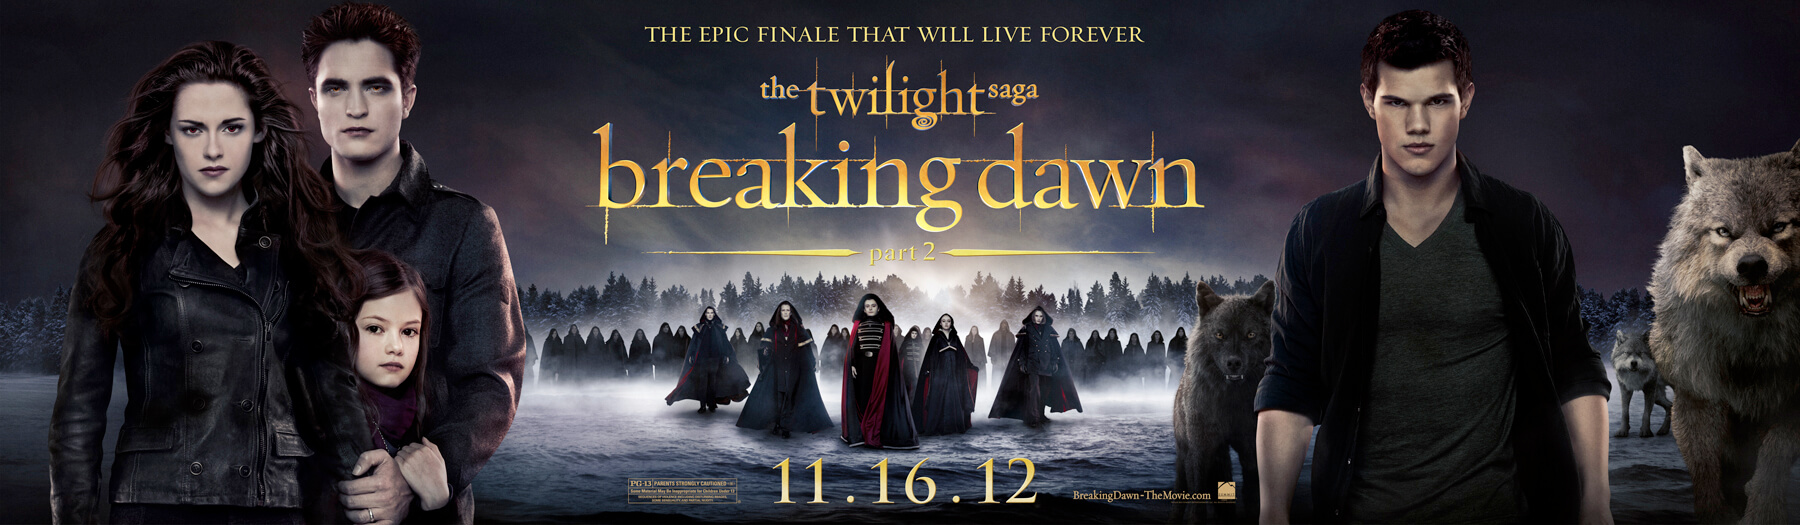 Twi_BreakDawn2_horiz_full